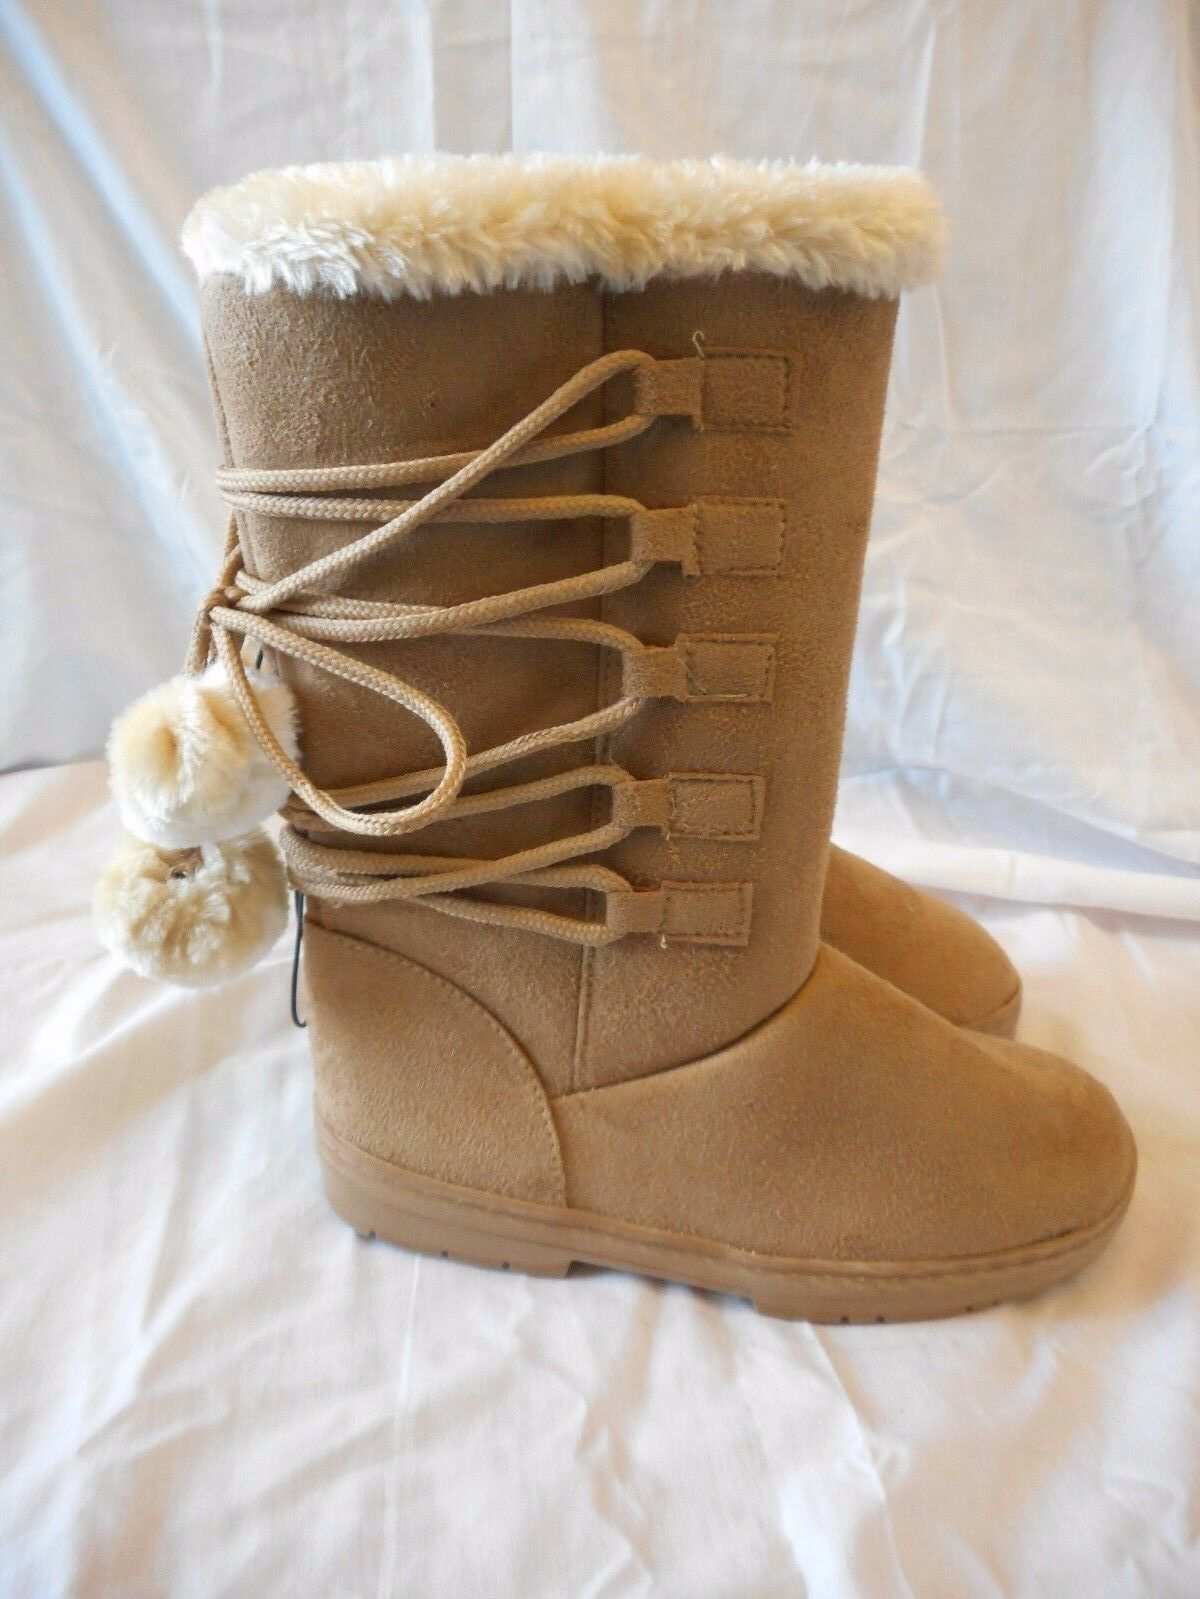 Women's Rue 21 Lace Up Faux Fur Poms Boots Brown Size Medium 7/8 NEW